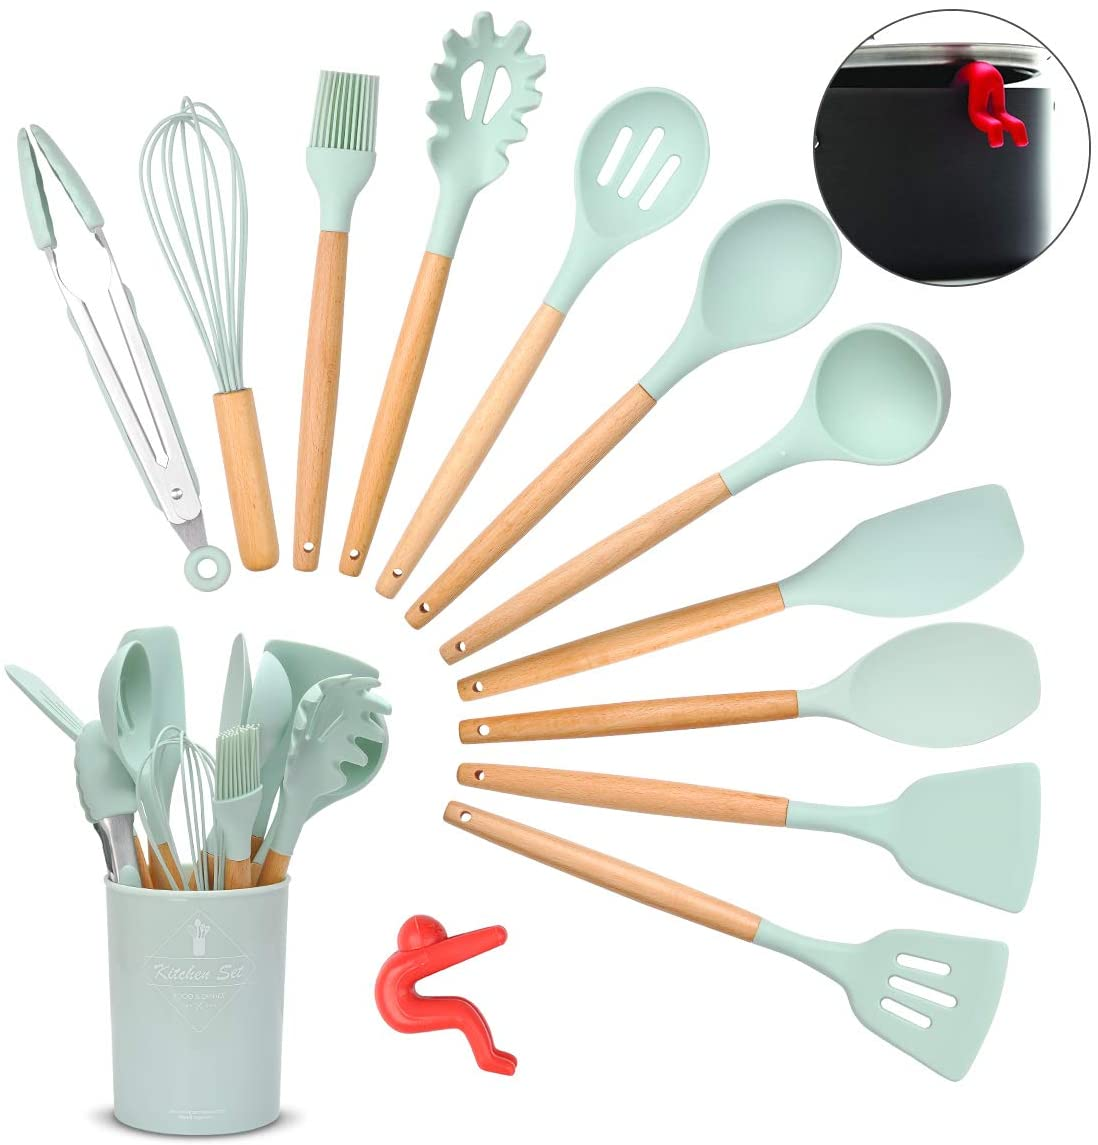 Songway Silicone Cooking Utensils Set,12PCS Kitchen Utensil Set with Wooden Handle,Heat-resistant Turner Tongs Spatula Spoon Kitchen Tools,Come with Free Anti Spill Tool